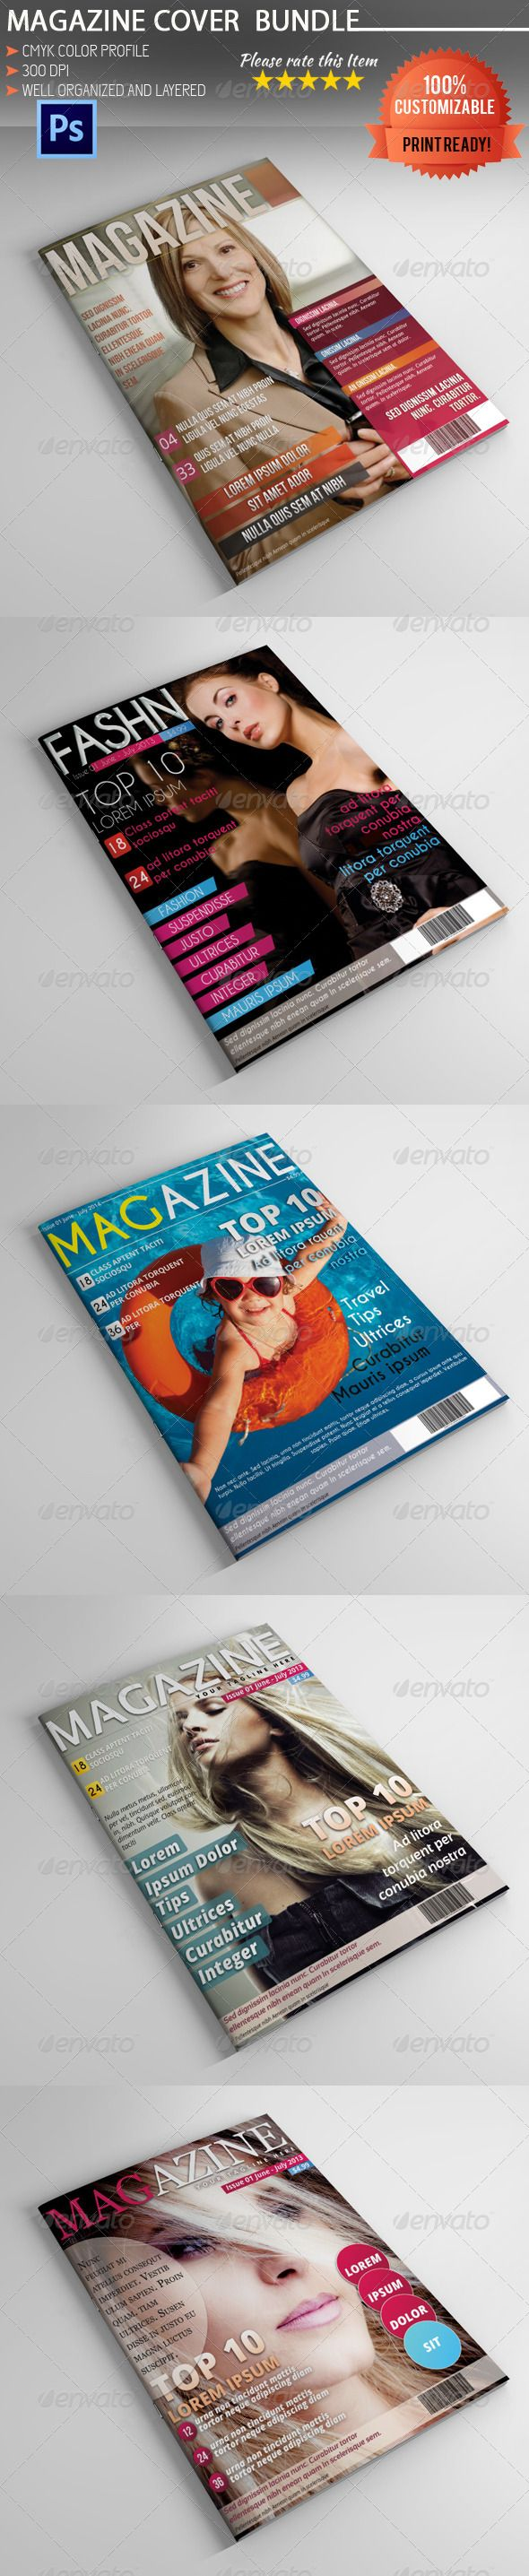 Magazine Cover Template Bundle - Magazine Template PSD. Download here: http://graphicriver.net/item/magazine-cover-template-bundle/5287446?s_rank=341&ref=yinkira